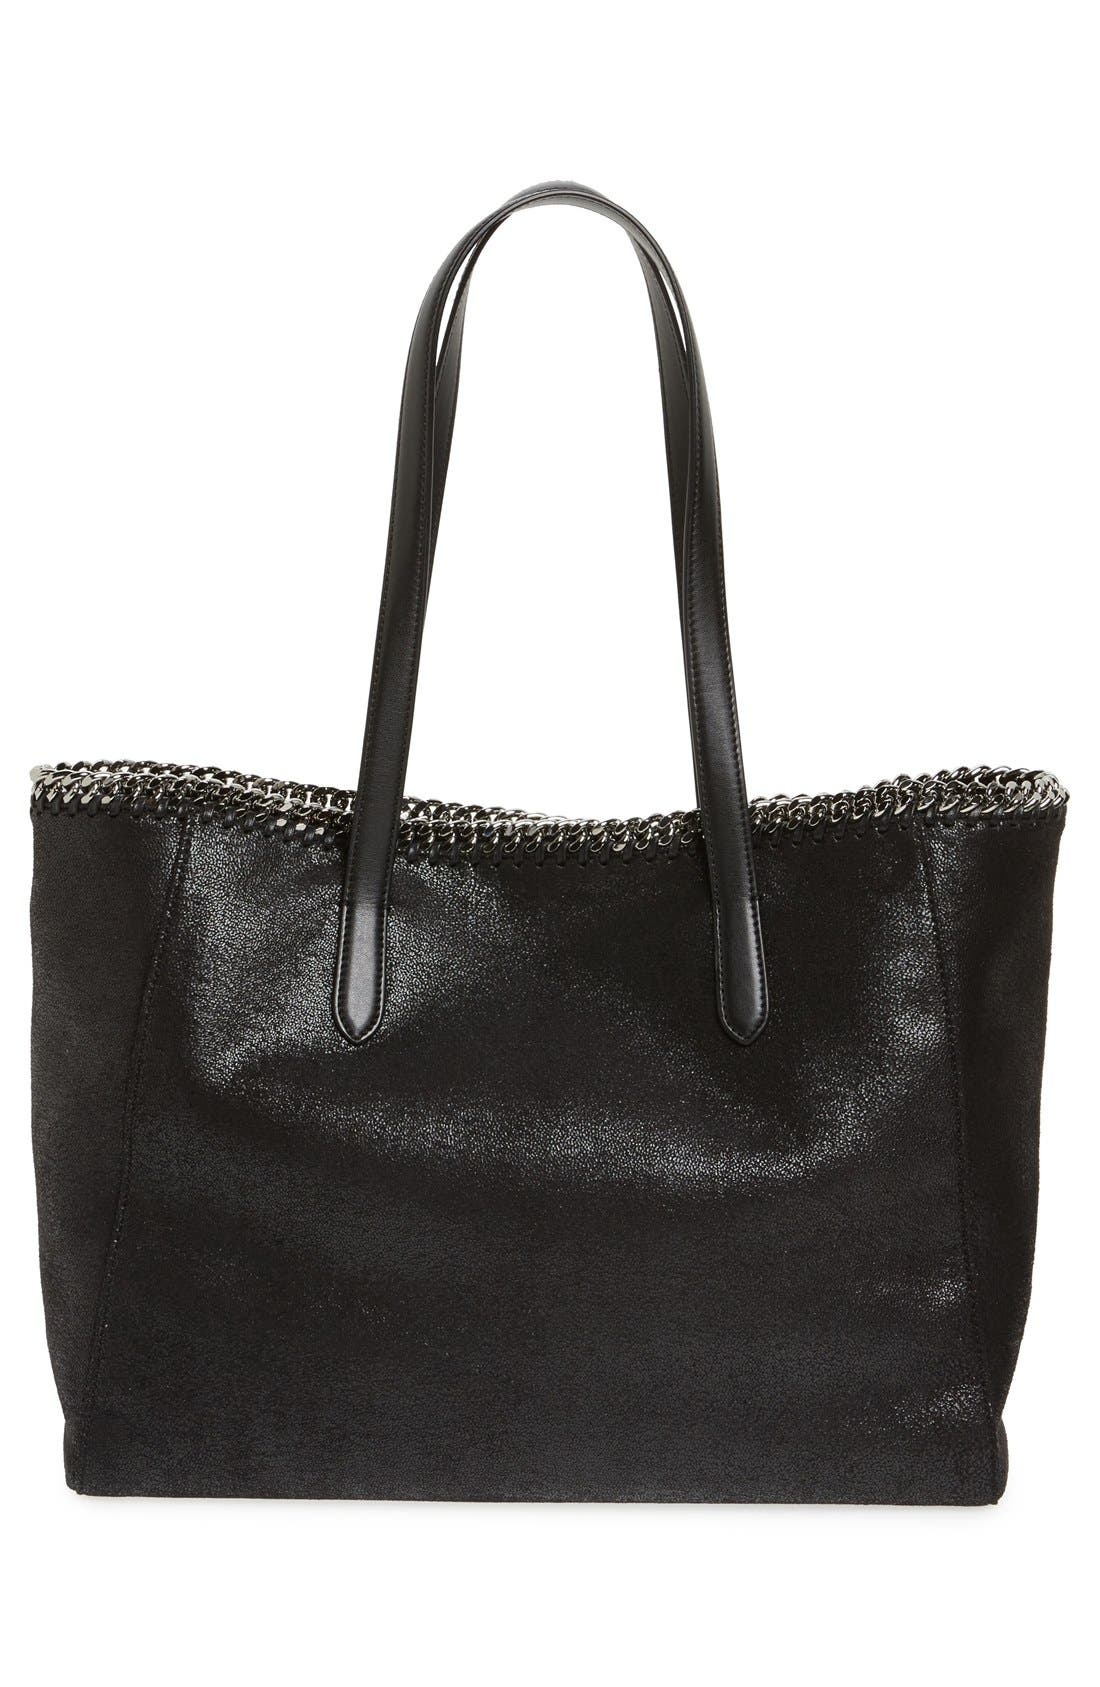 'Falabella - Shaggy Deer' Faux Leather Tote,                             Alternate thumbnail 5, color,                             001